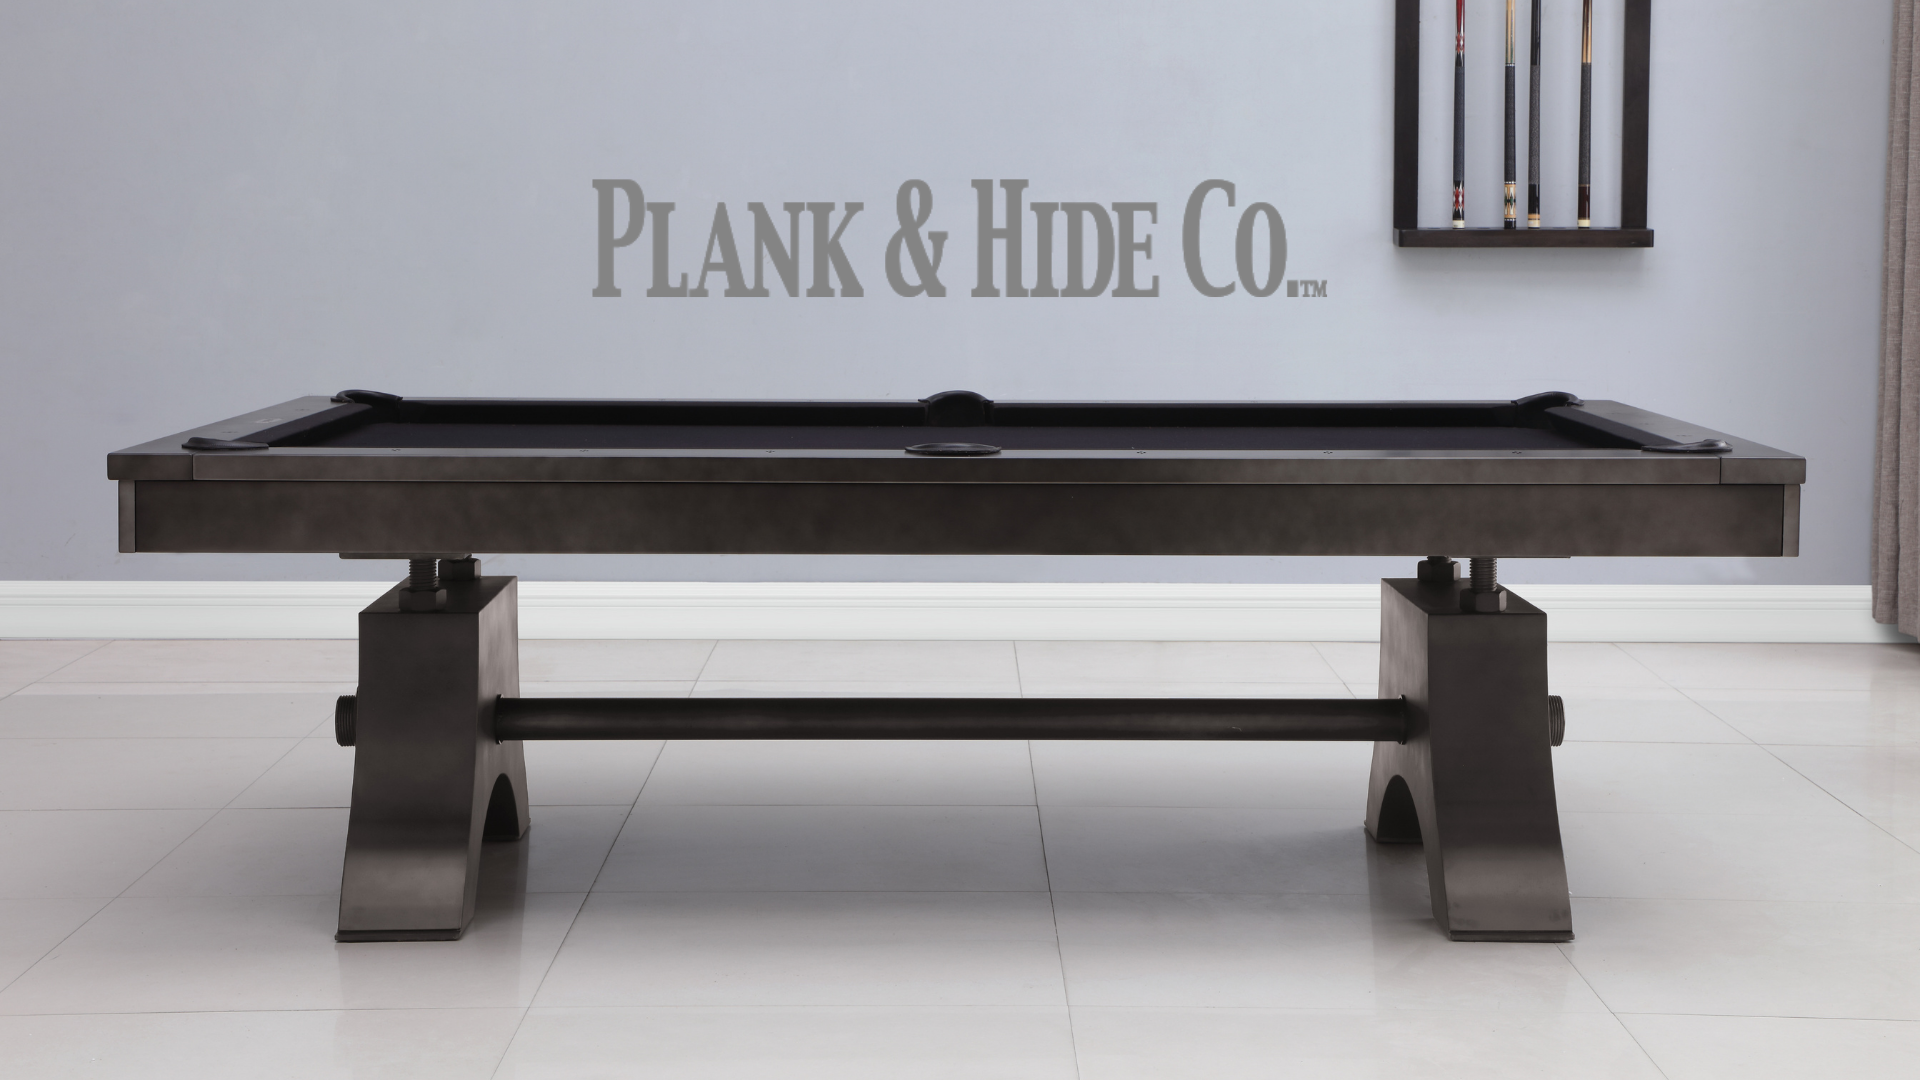 Sawyer Twain Plank & Hide Co